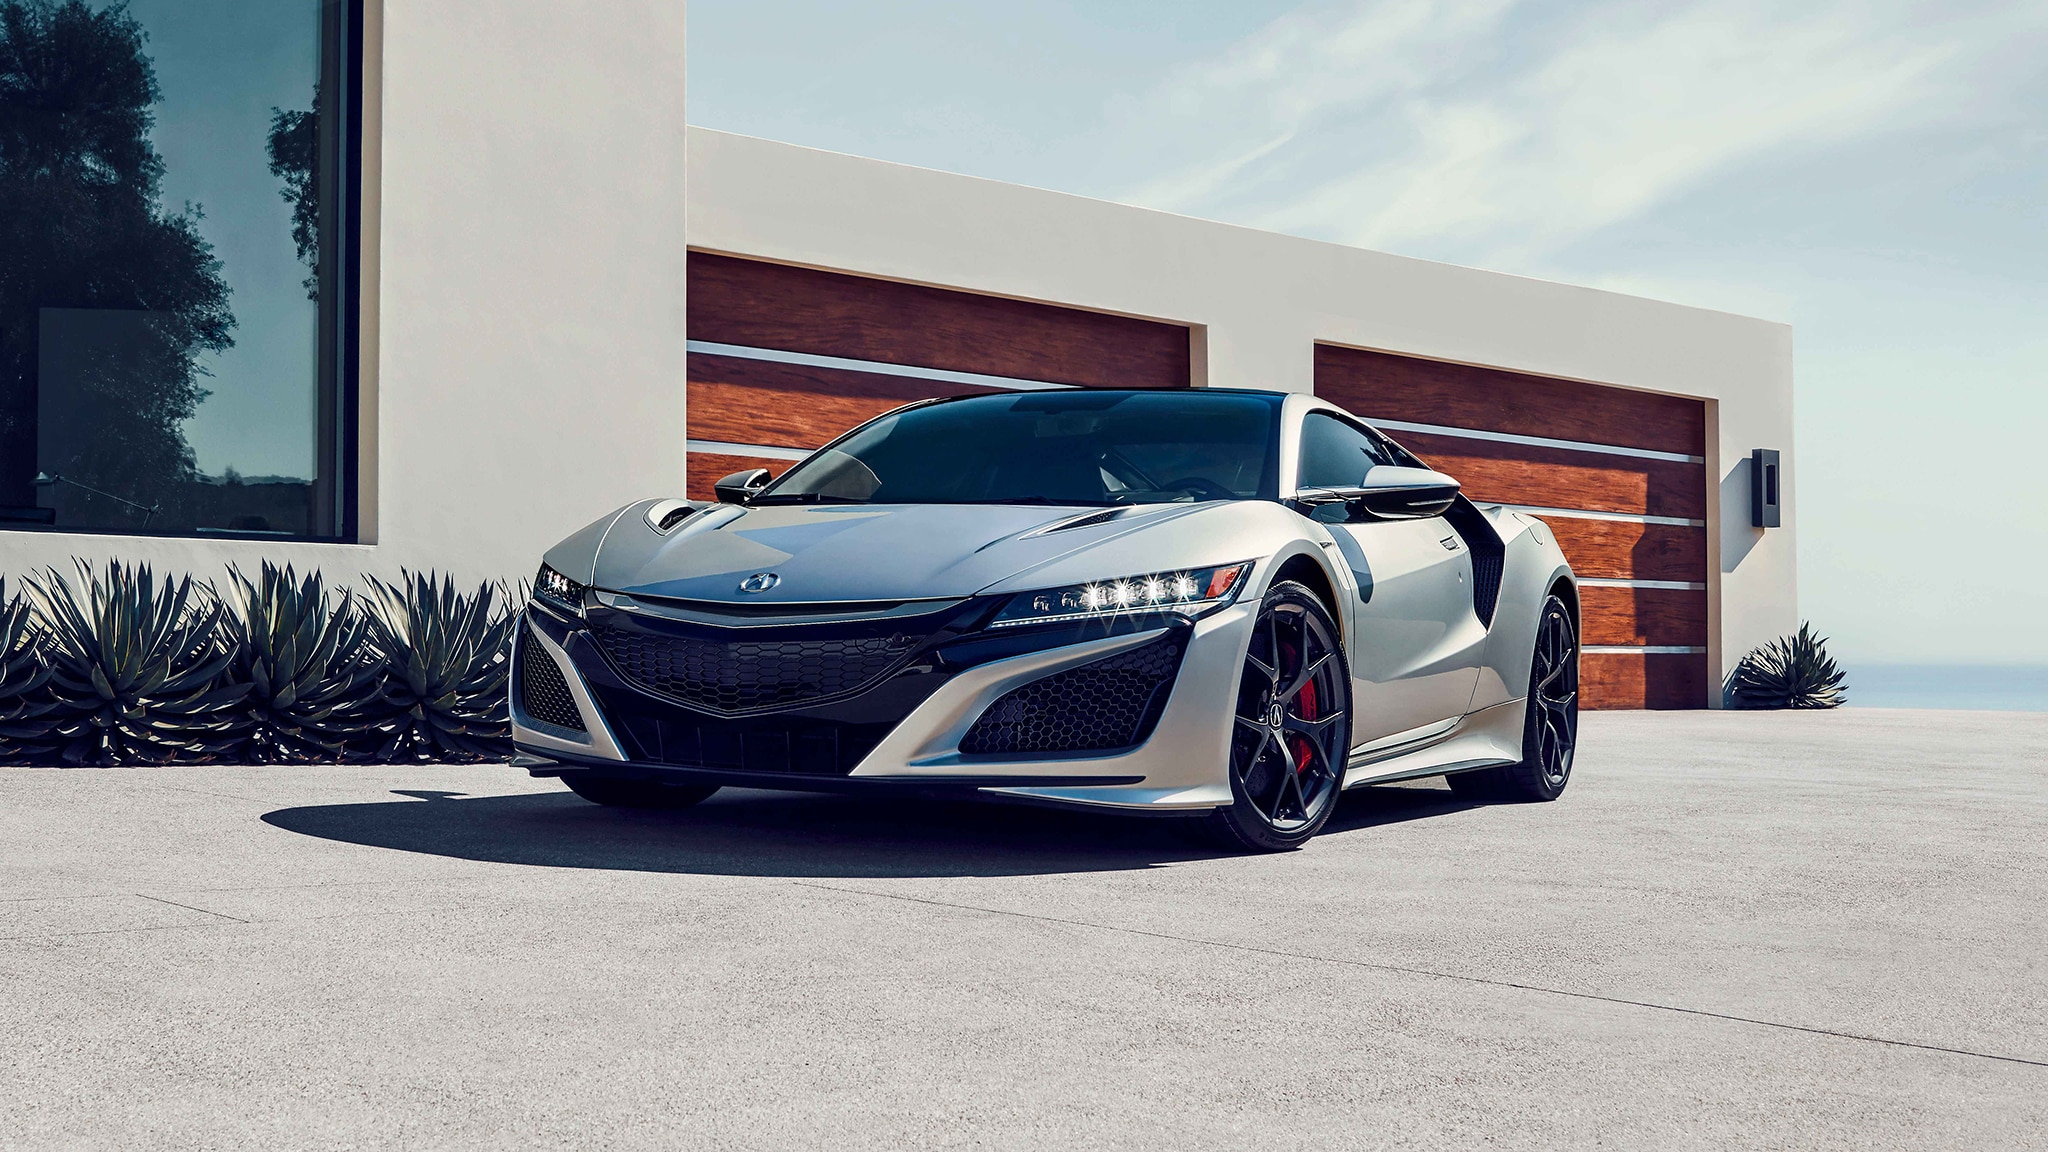 Acura Exec Jon Ikeda on How They're Getting the Brand Back on Track